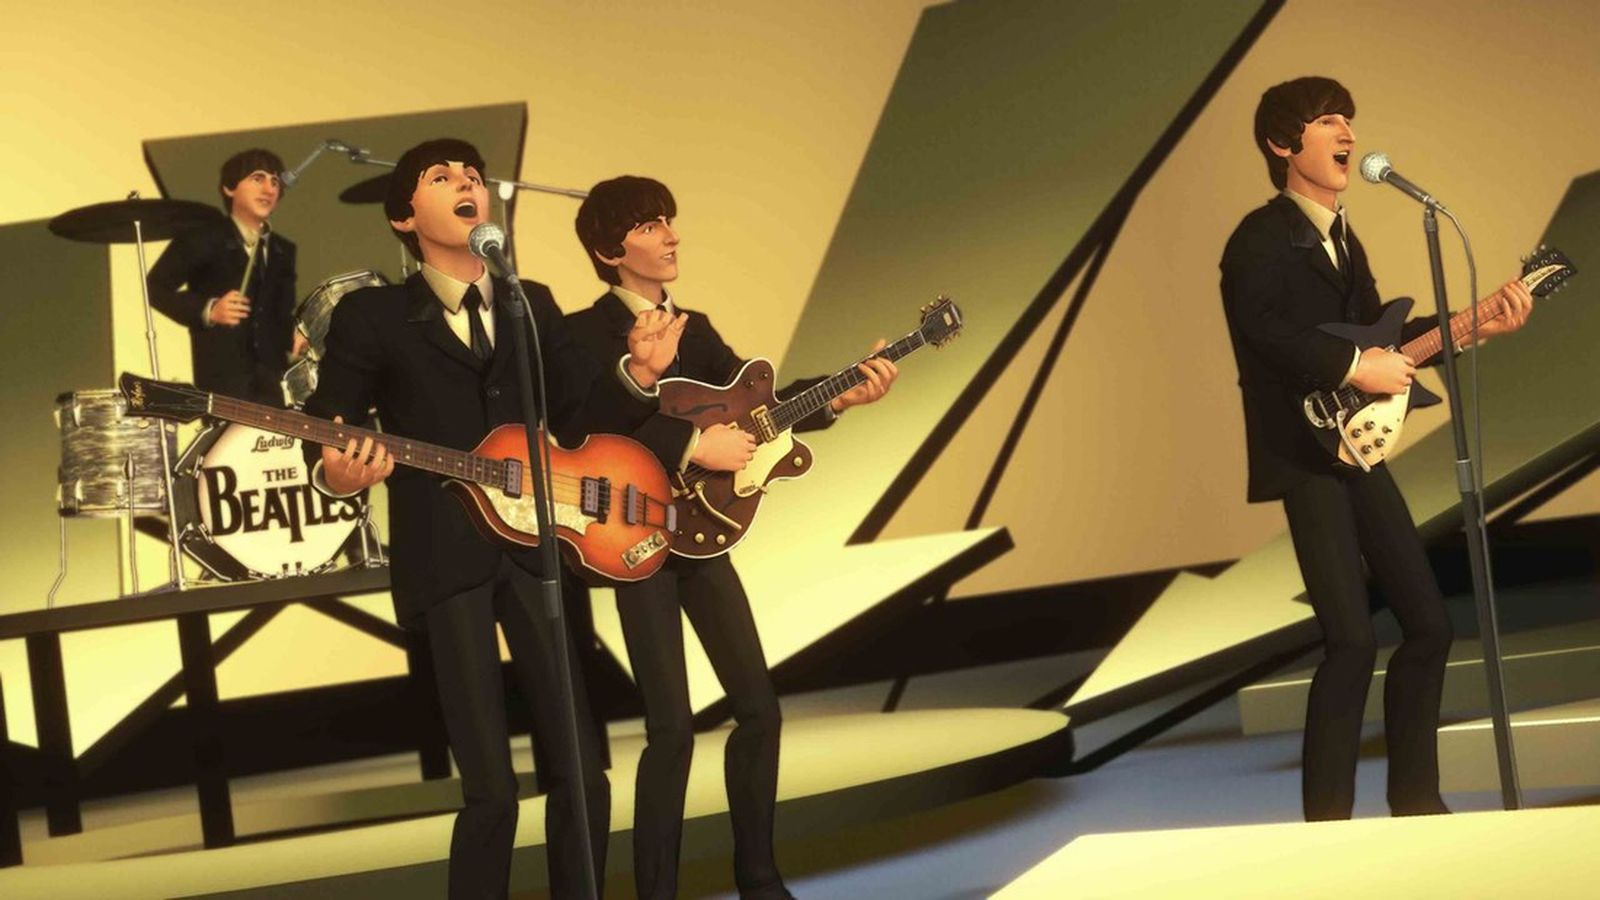 You won't be able to buy The Beatles: Rock Band's DLC songs